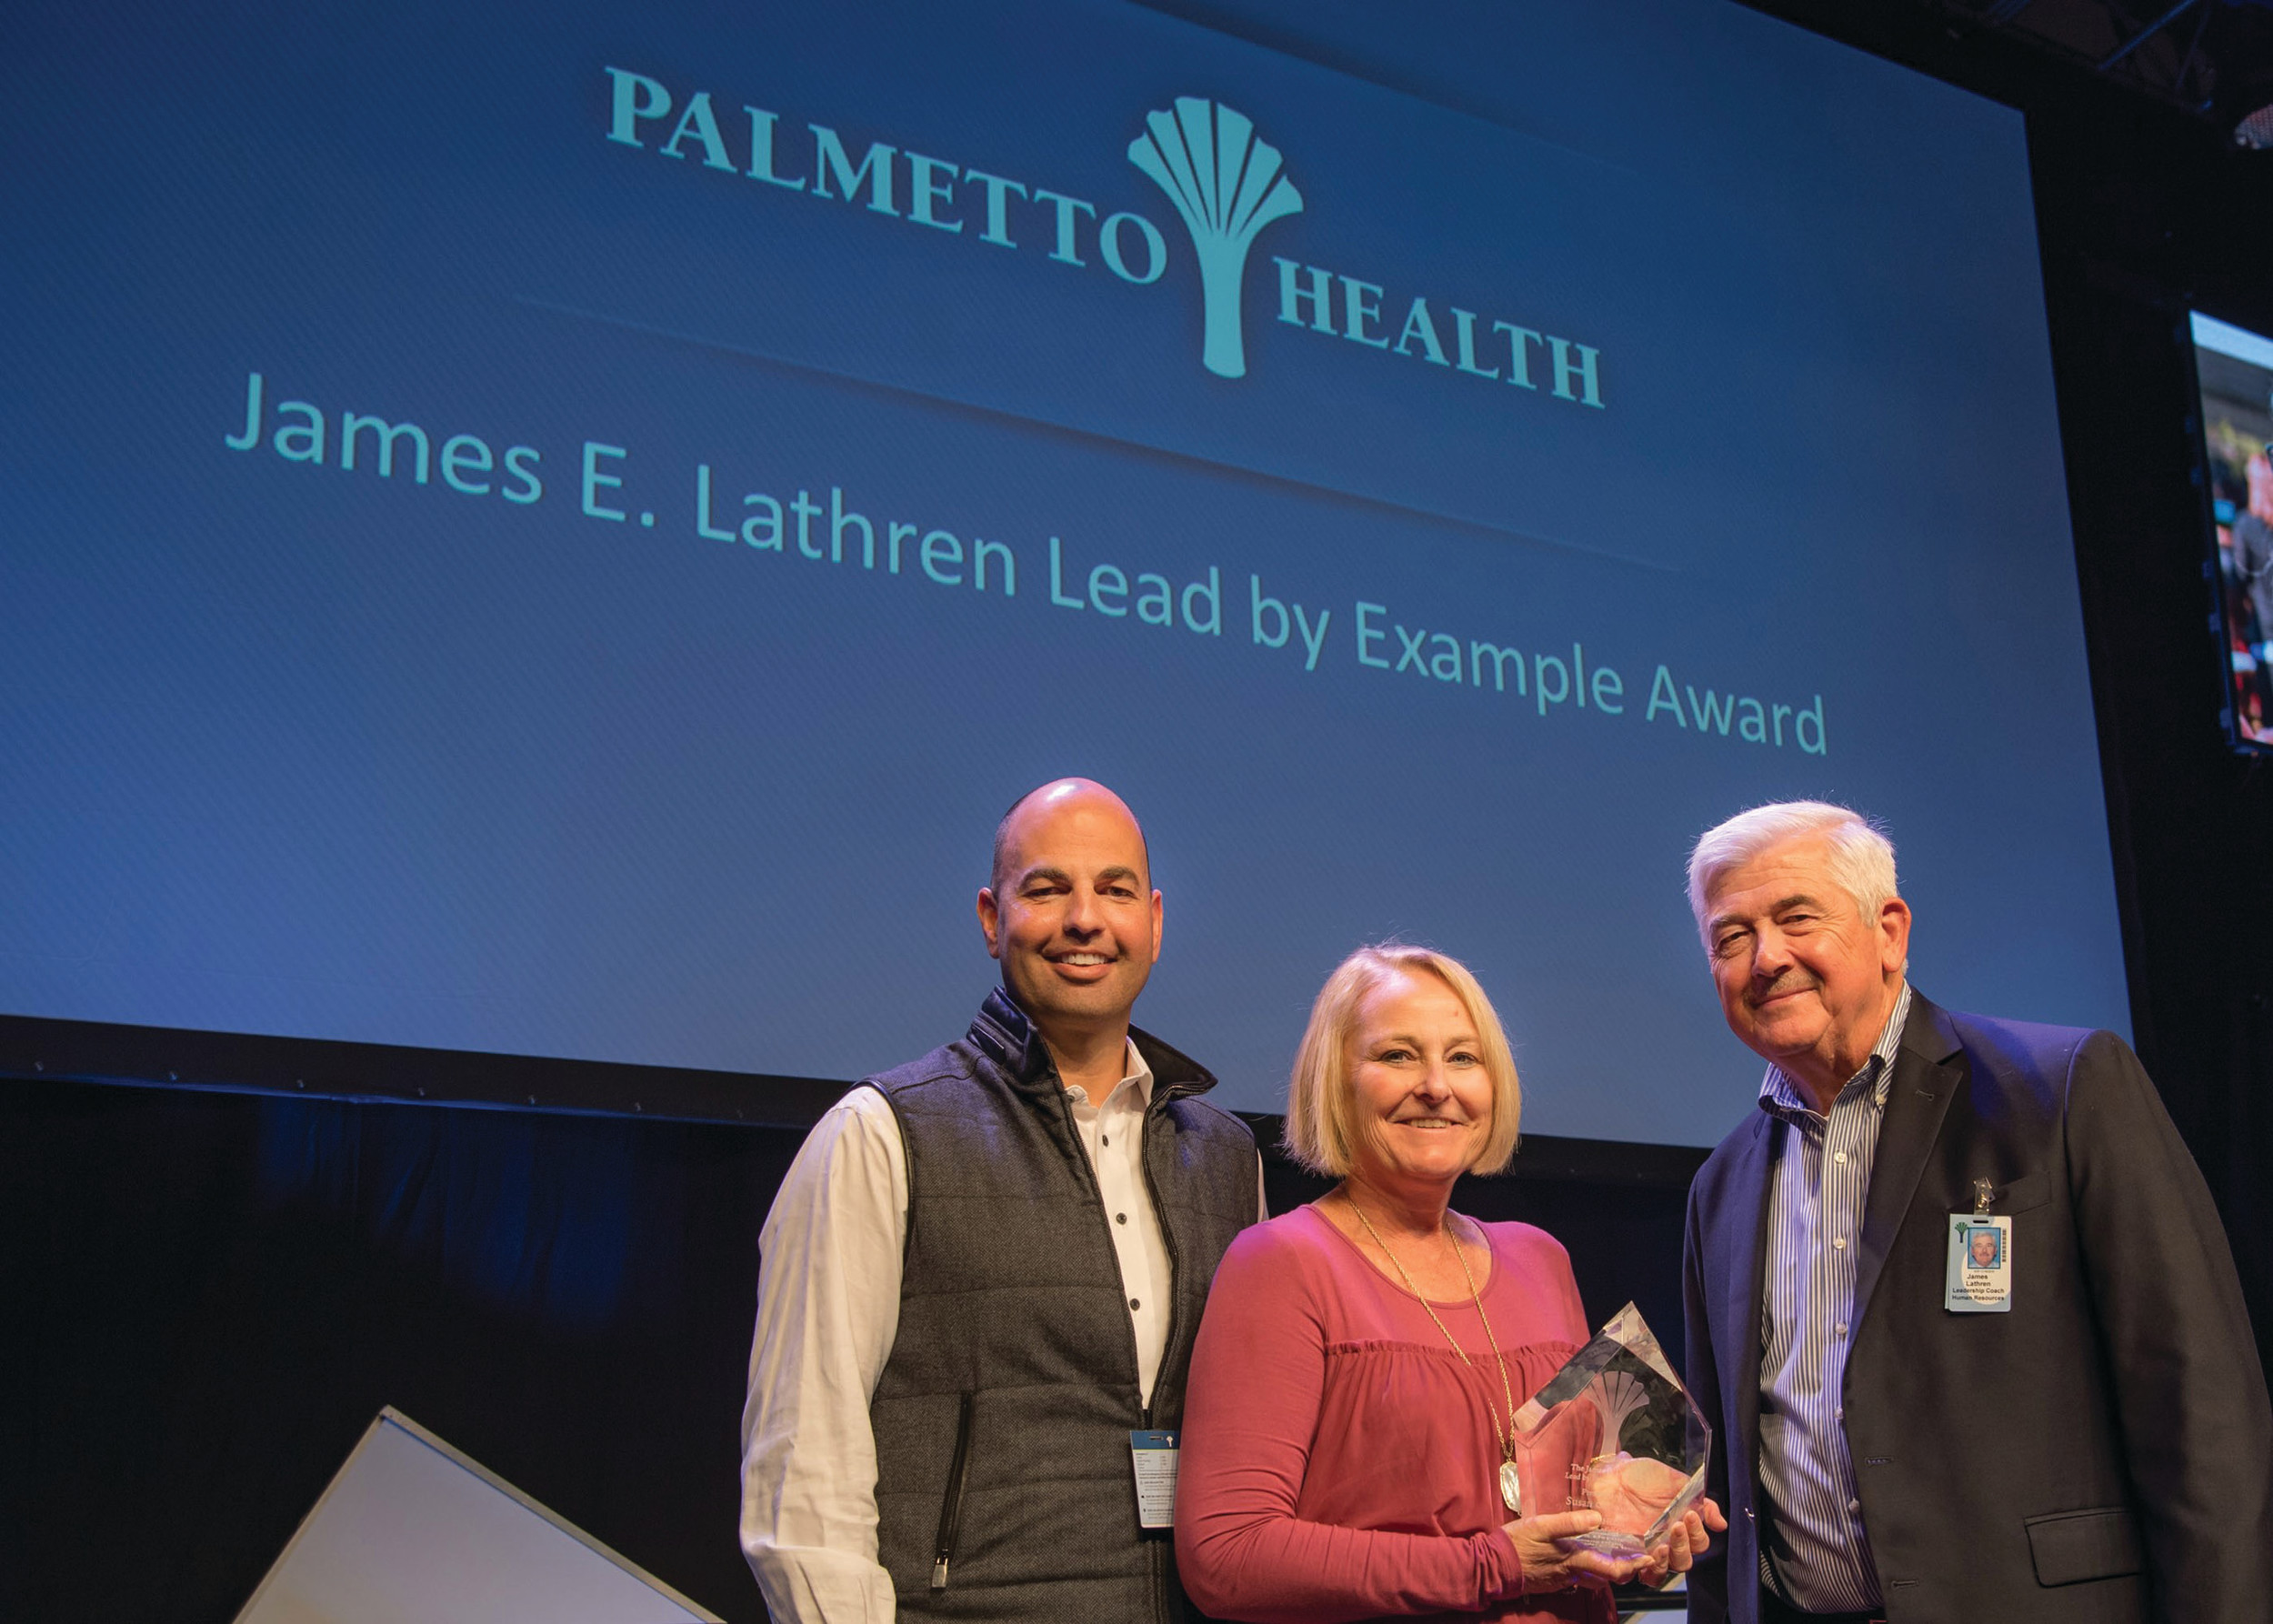 "Susan Gaymon receives the James E. Lathren Lead by Example Award from John J. Singerling III, president of Palmetto Health, and James E. ""Jim"" Lathren, for whom the award is named."